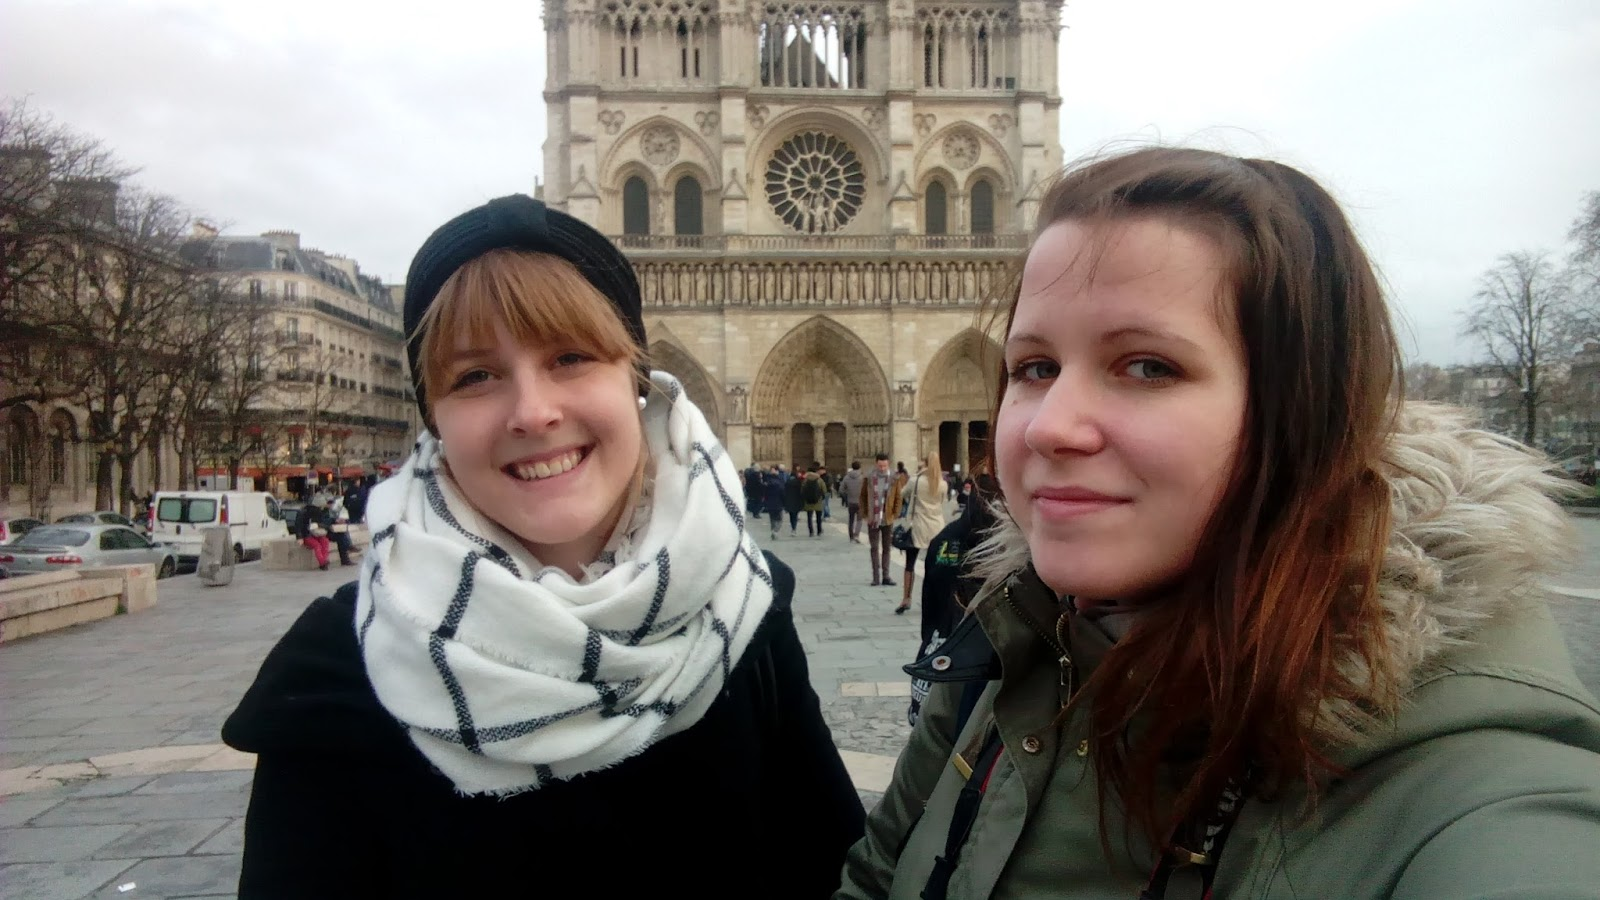 Selfies for Life mit Notre Dame und so